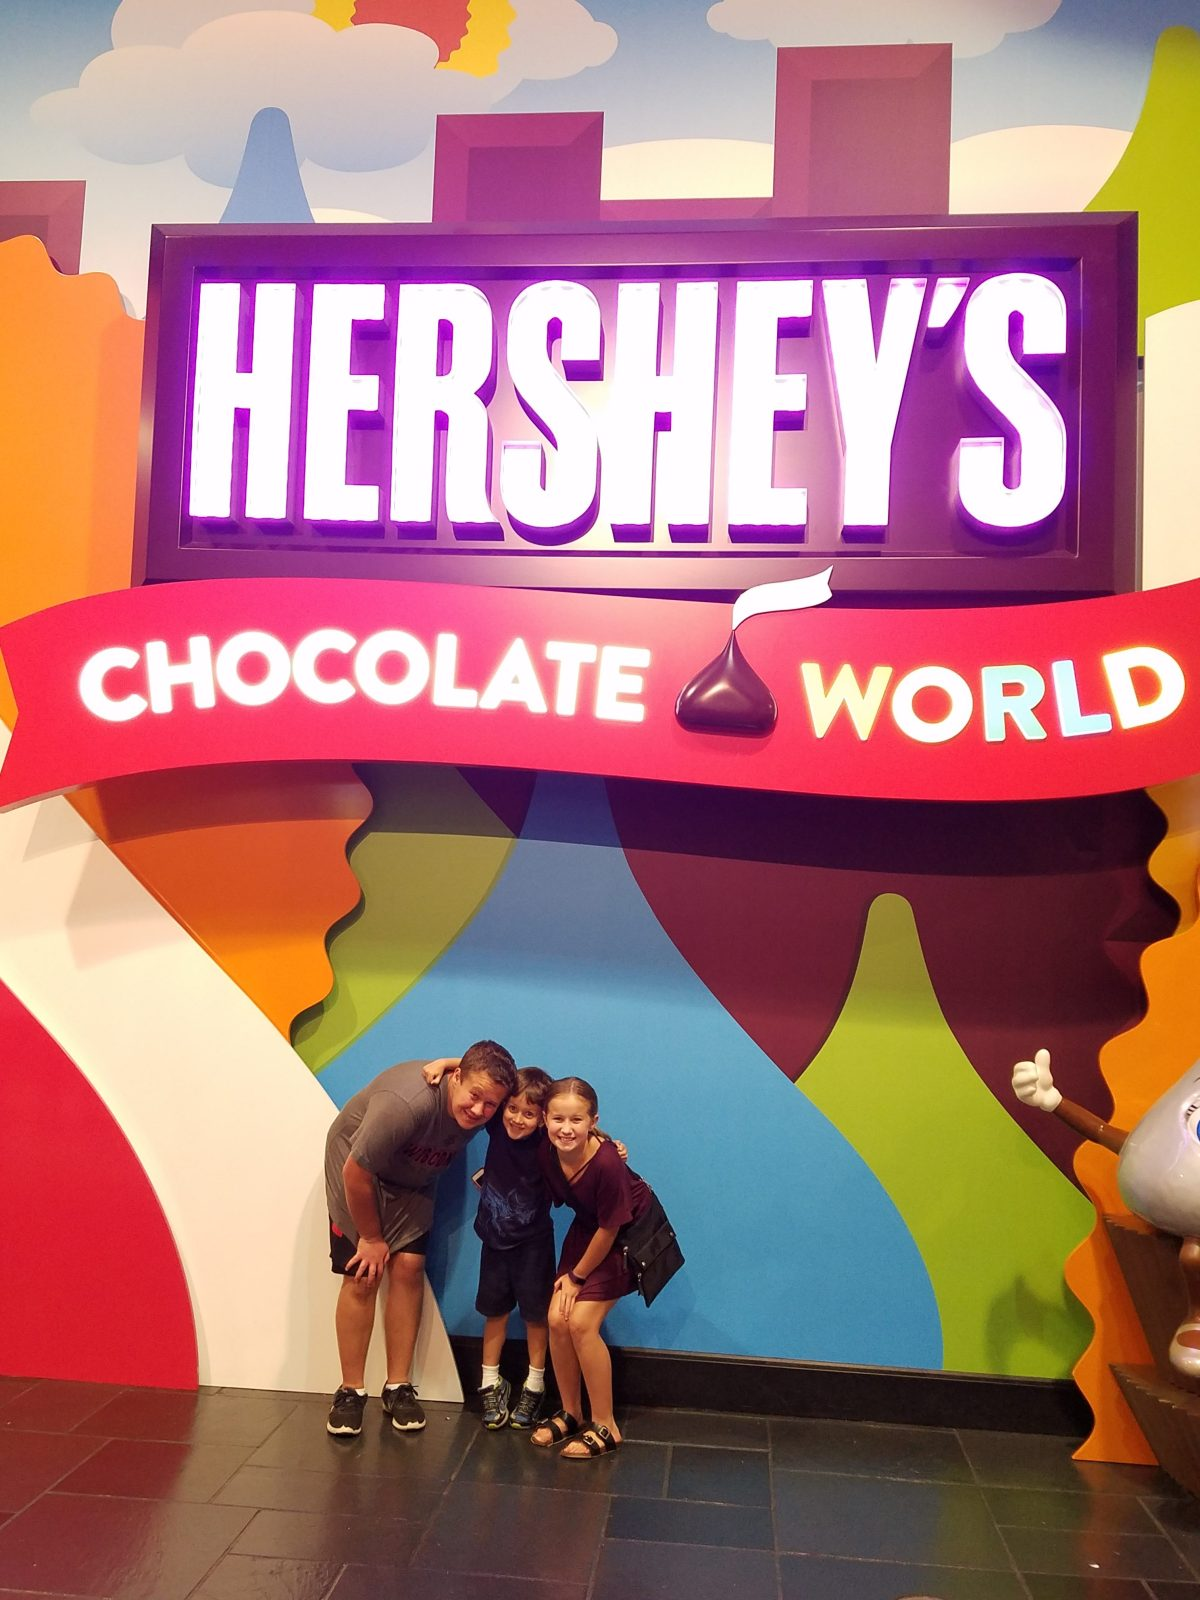 How to Get a Sweet Treat at Hershey's Chocolate World